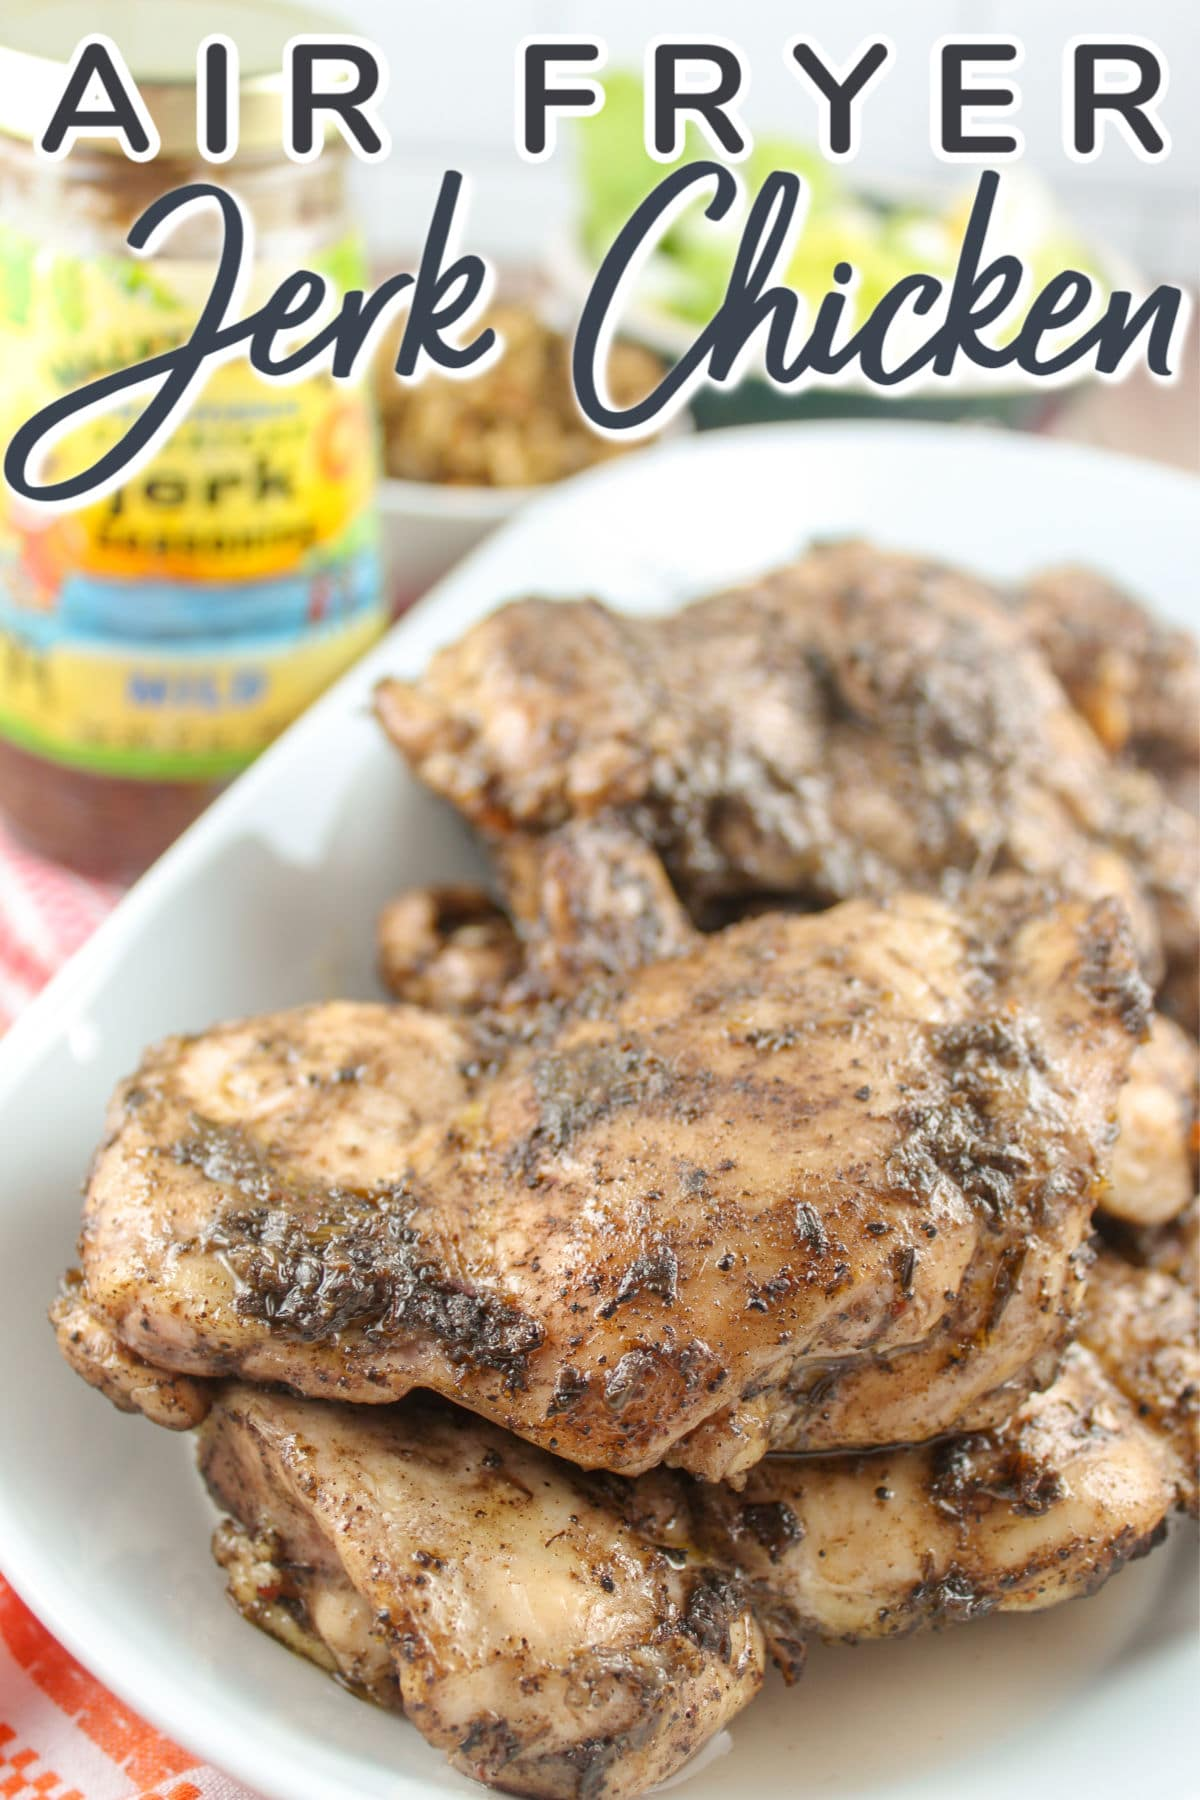 After visiting the Caribbean, I fell in love with Jerk Chicken! This spicy, juicy burst of flavor was sooo good - I had to make it myself!  via @foodhussy